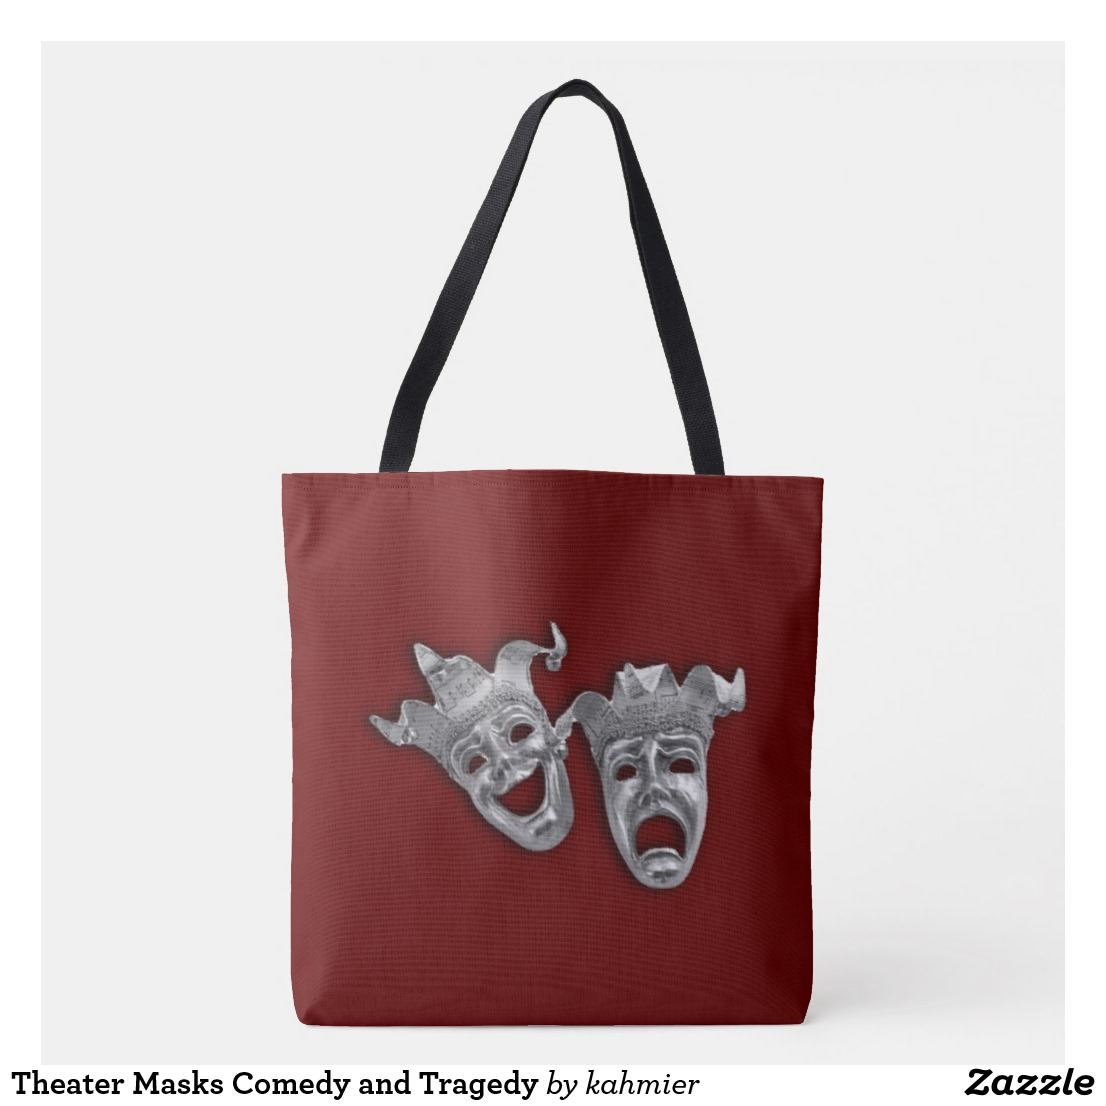 Theater Masks Comedy and Tragedy Tote Bag